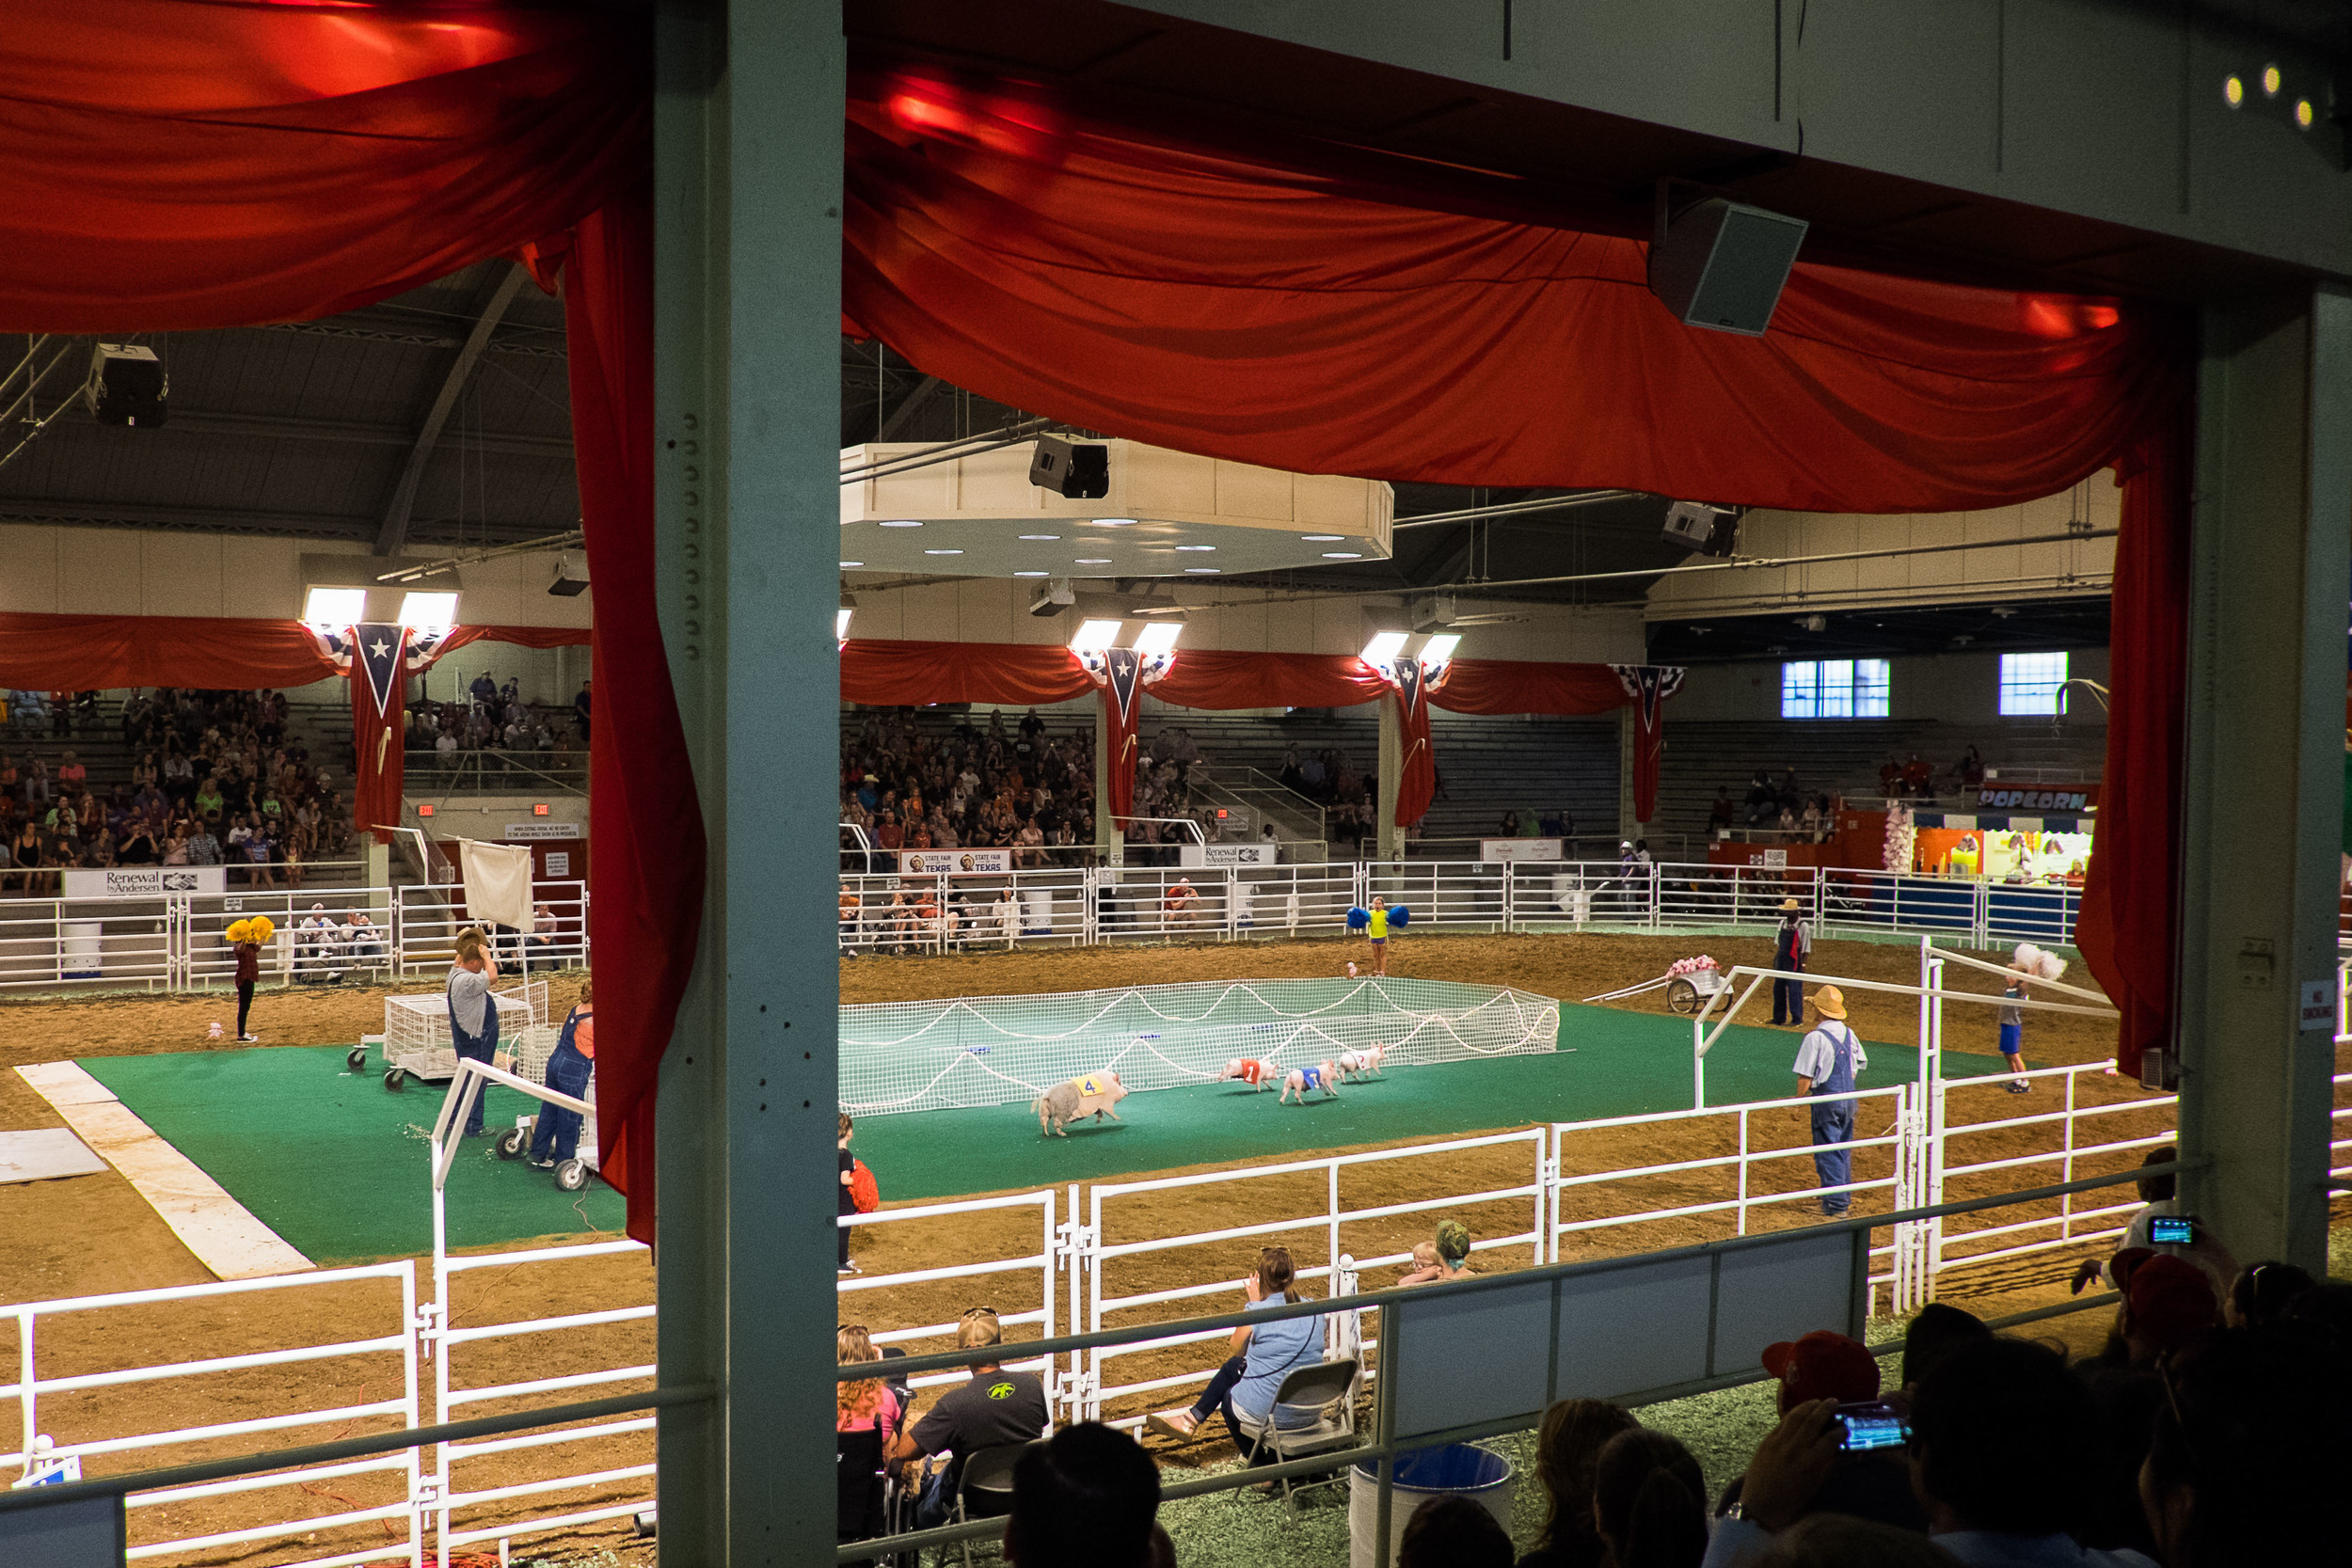 And in the South, you must have Pig Races. Ours won two of three races. We headed home on a high note!